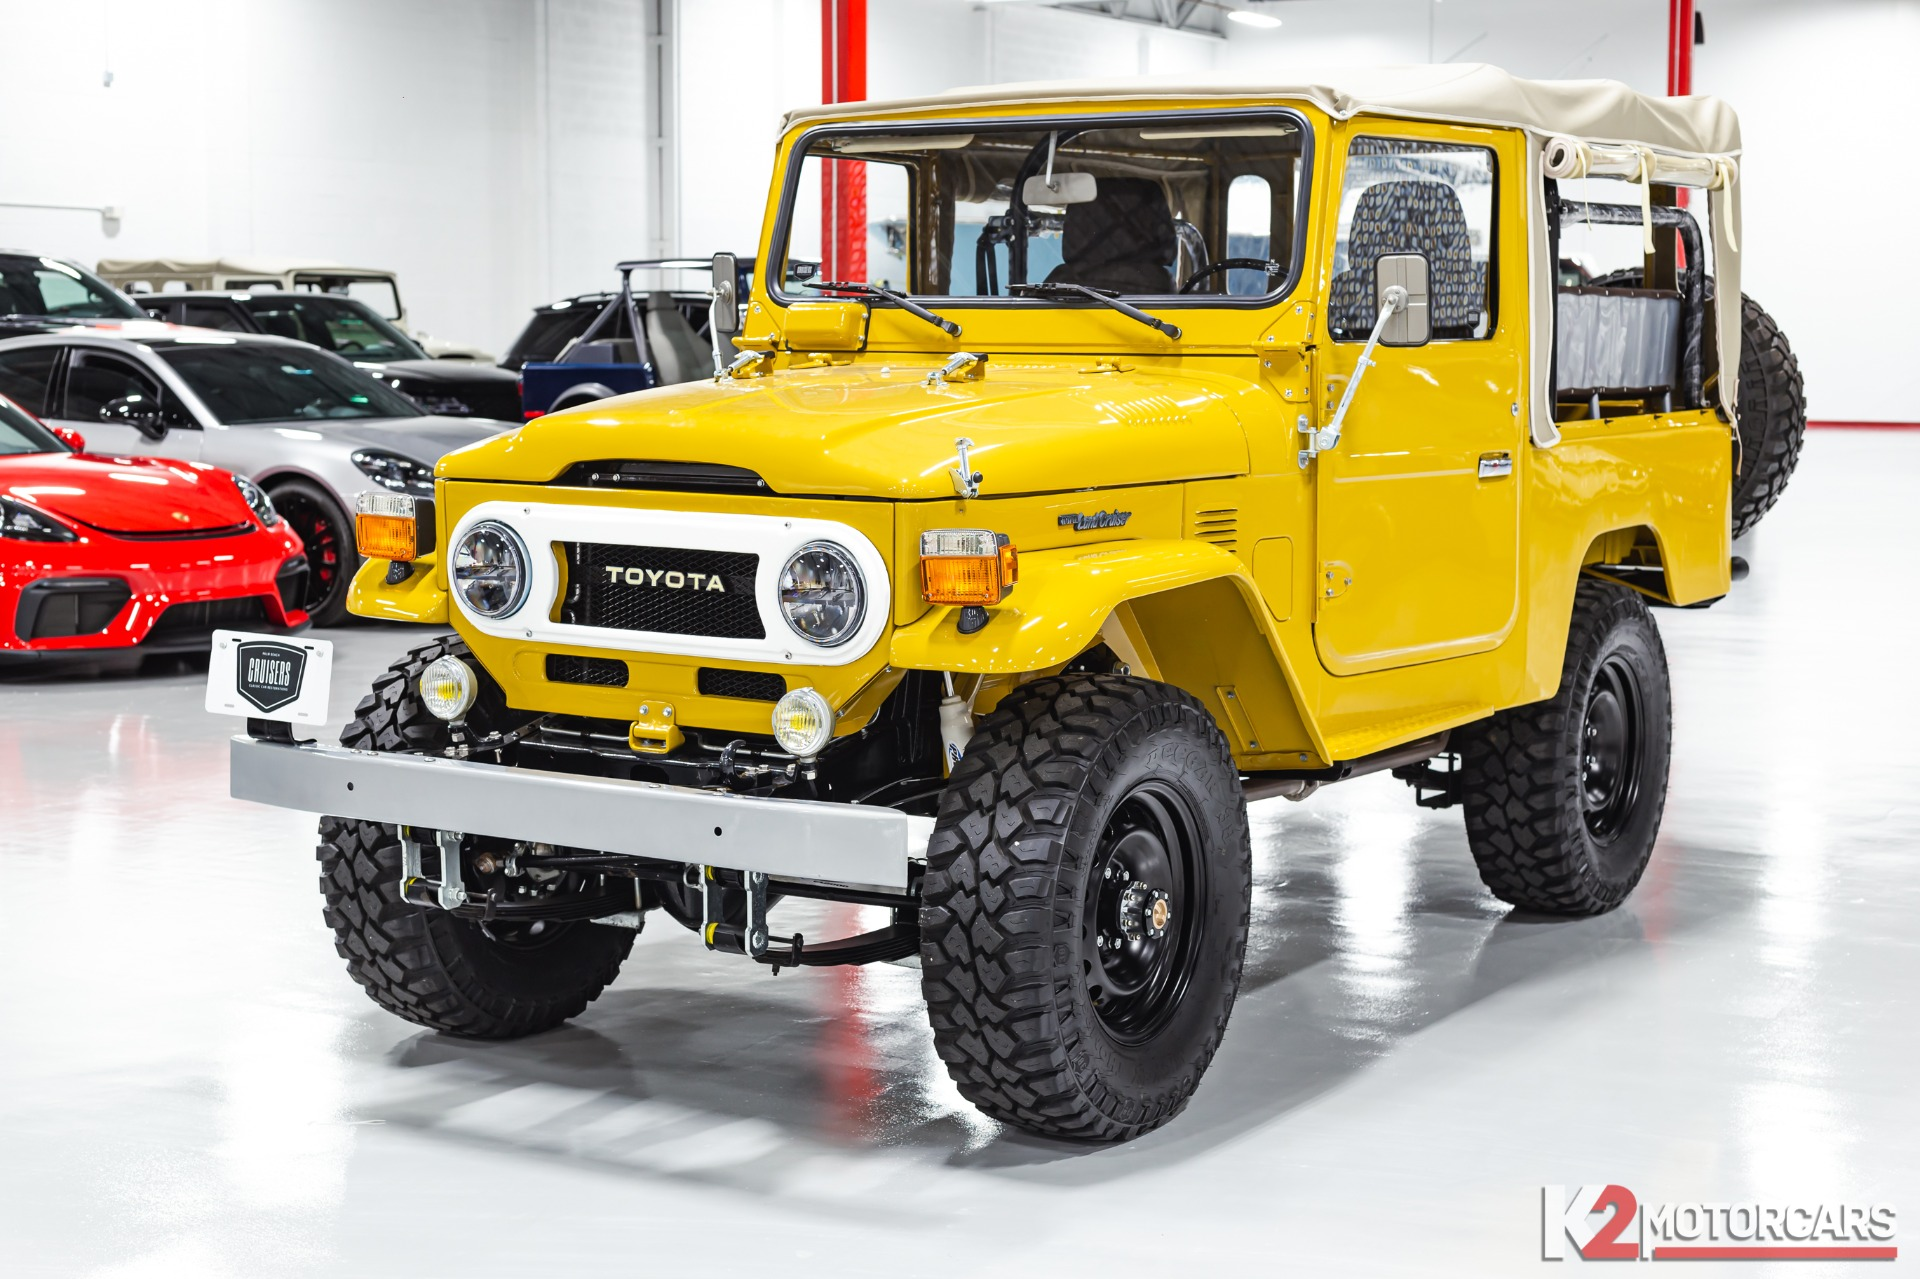 1977 Toyota Land Cruiser 40 Series 4WD